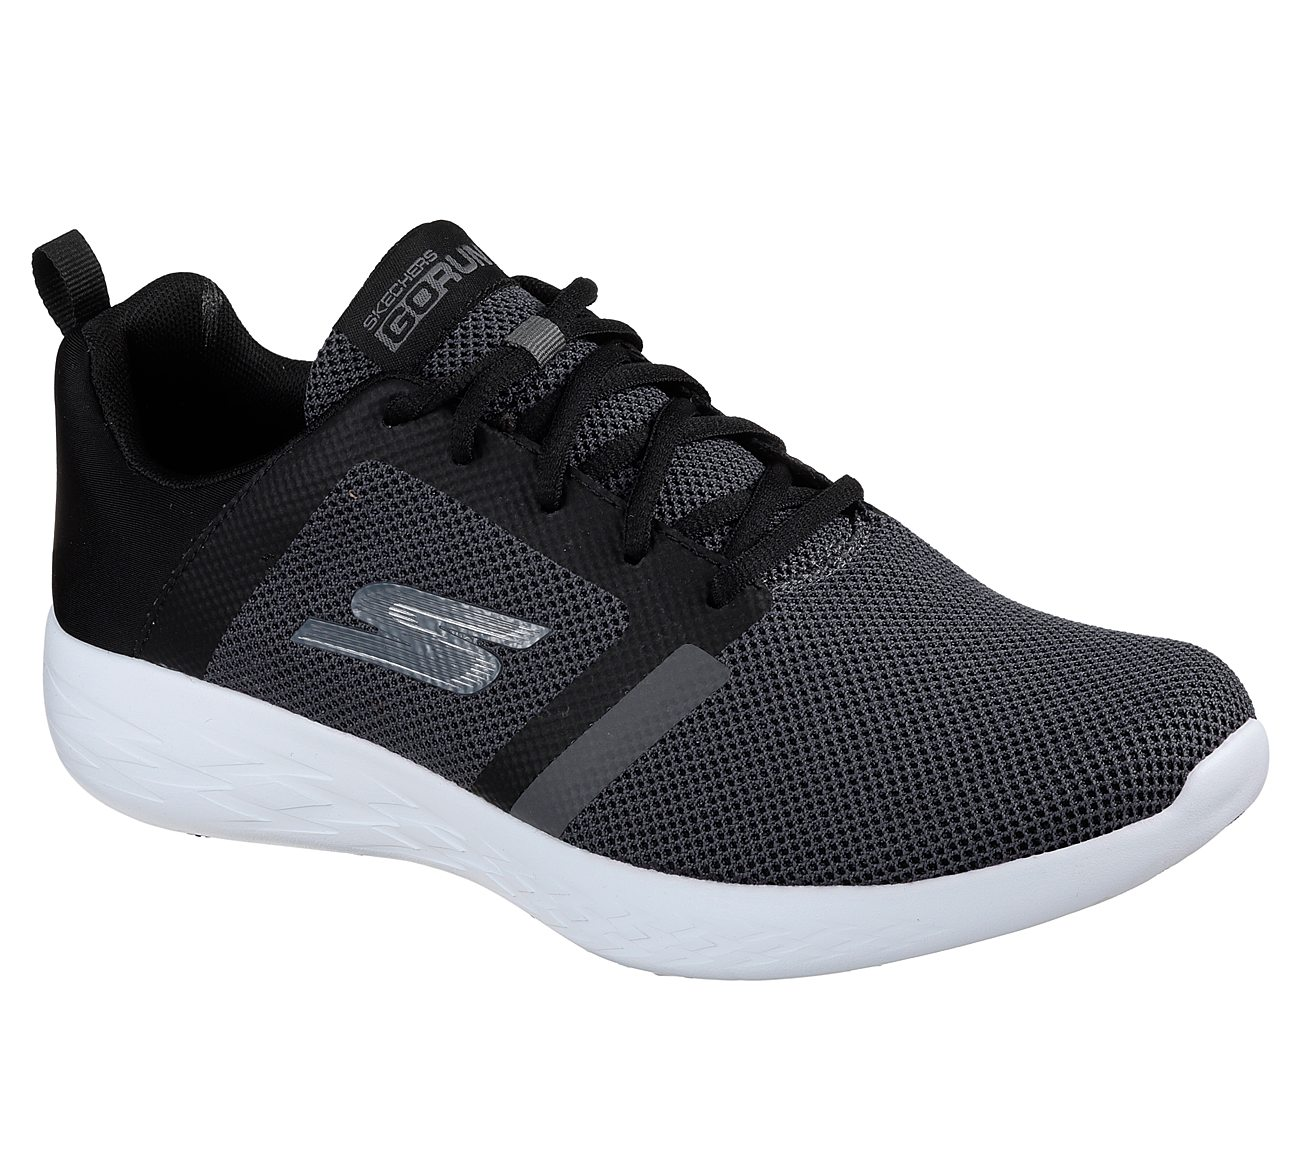 ae77f212e23d Buy SKECHERS Skechers GOrun 600 - Revel Skechers Performance Shoes ...